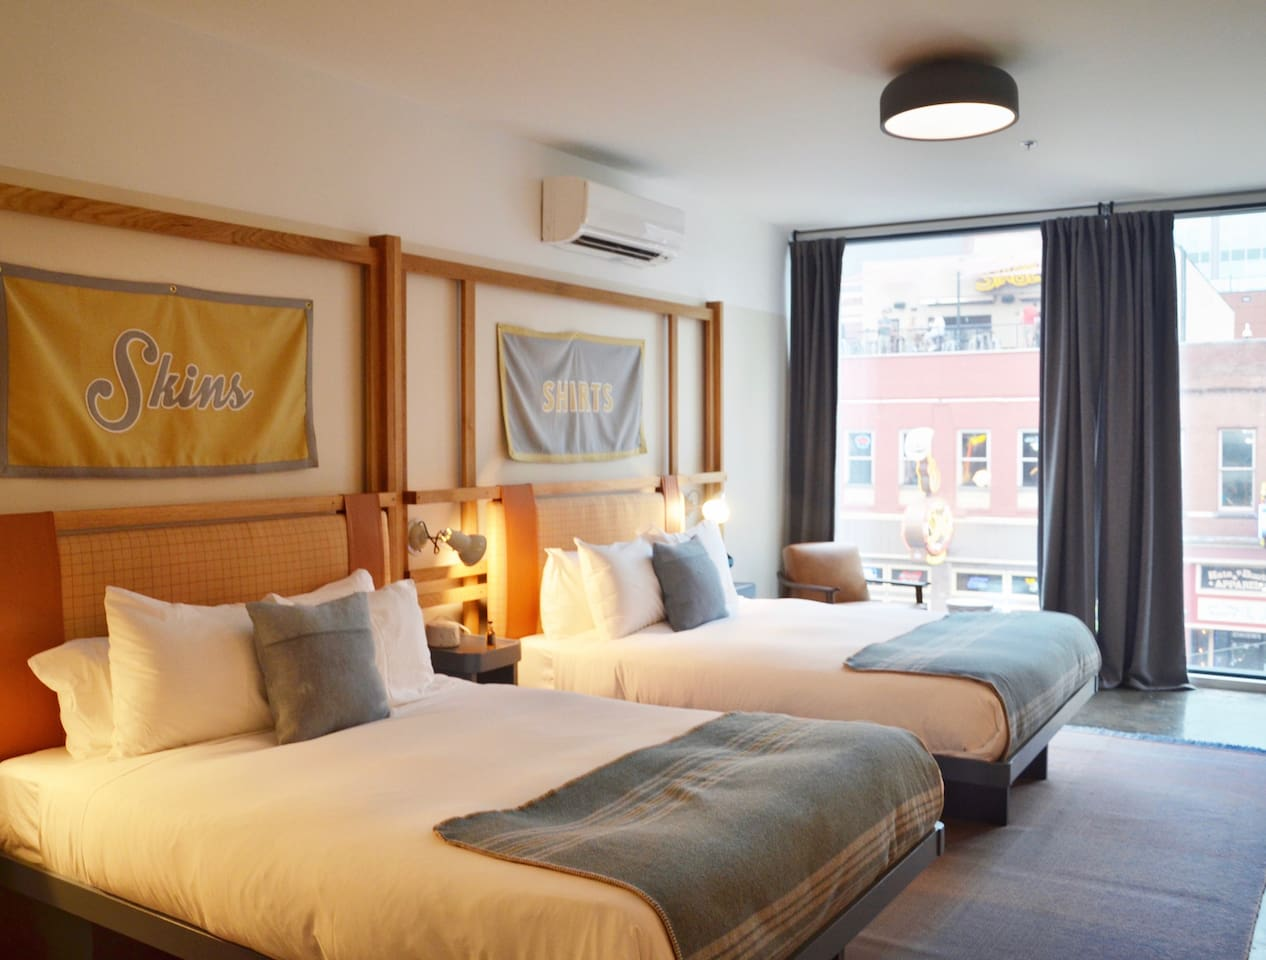 Our Double Queen Room features Casper Mattresses, plush pillows, and floor to ceiling views of Lower Broadway.